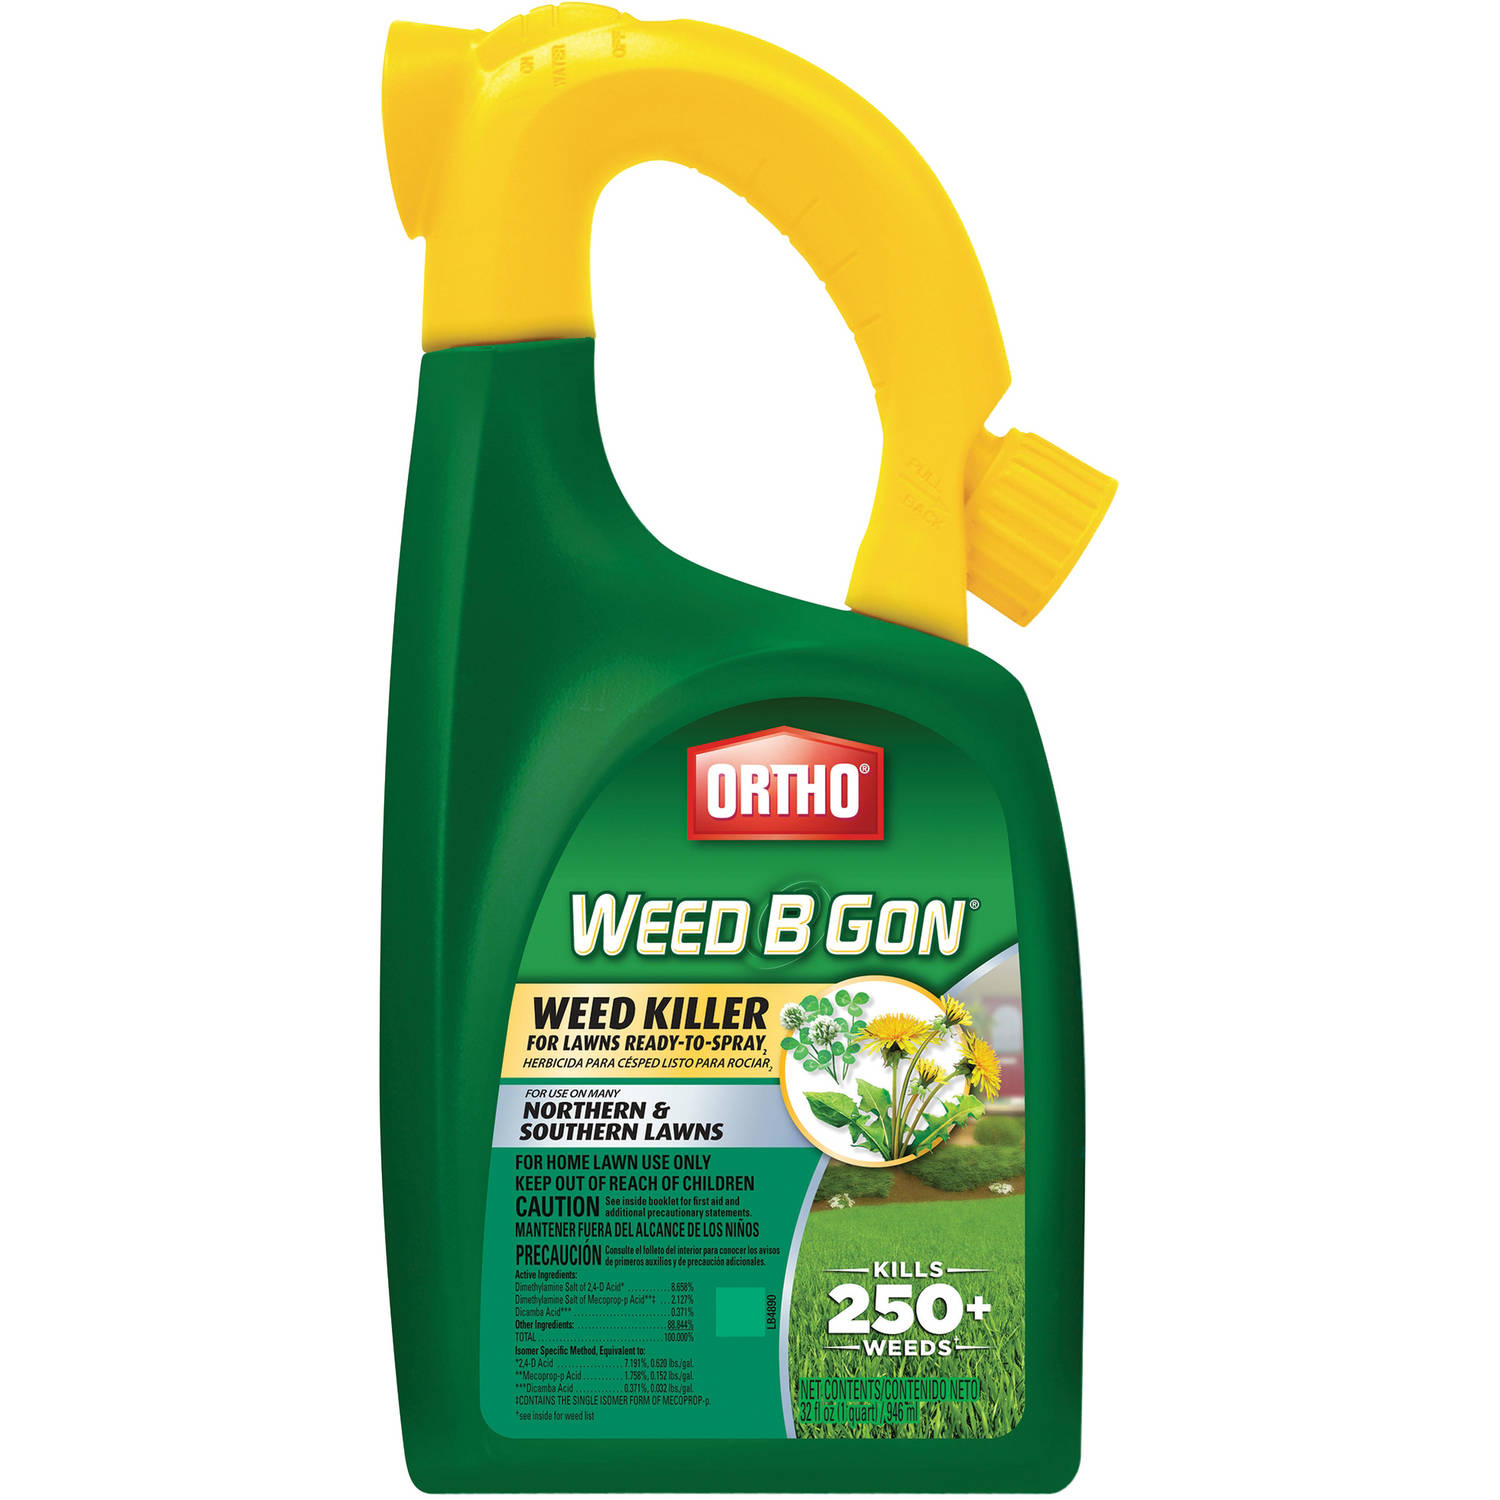 Ortho Weed B Gon Weed Killer for Lawns Ready-To-Spray, 32 oz